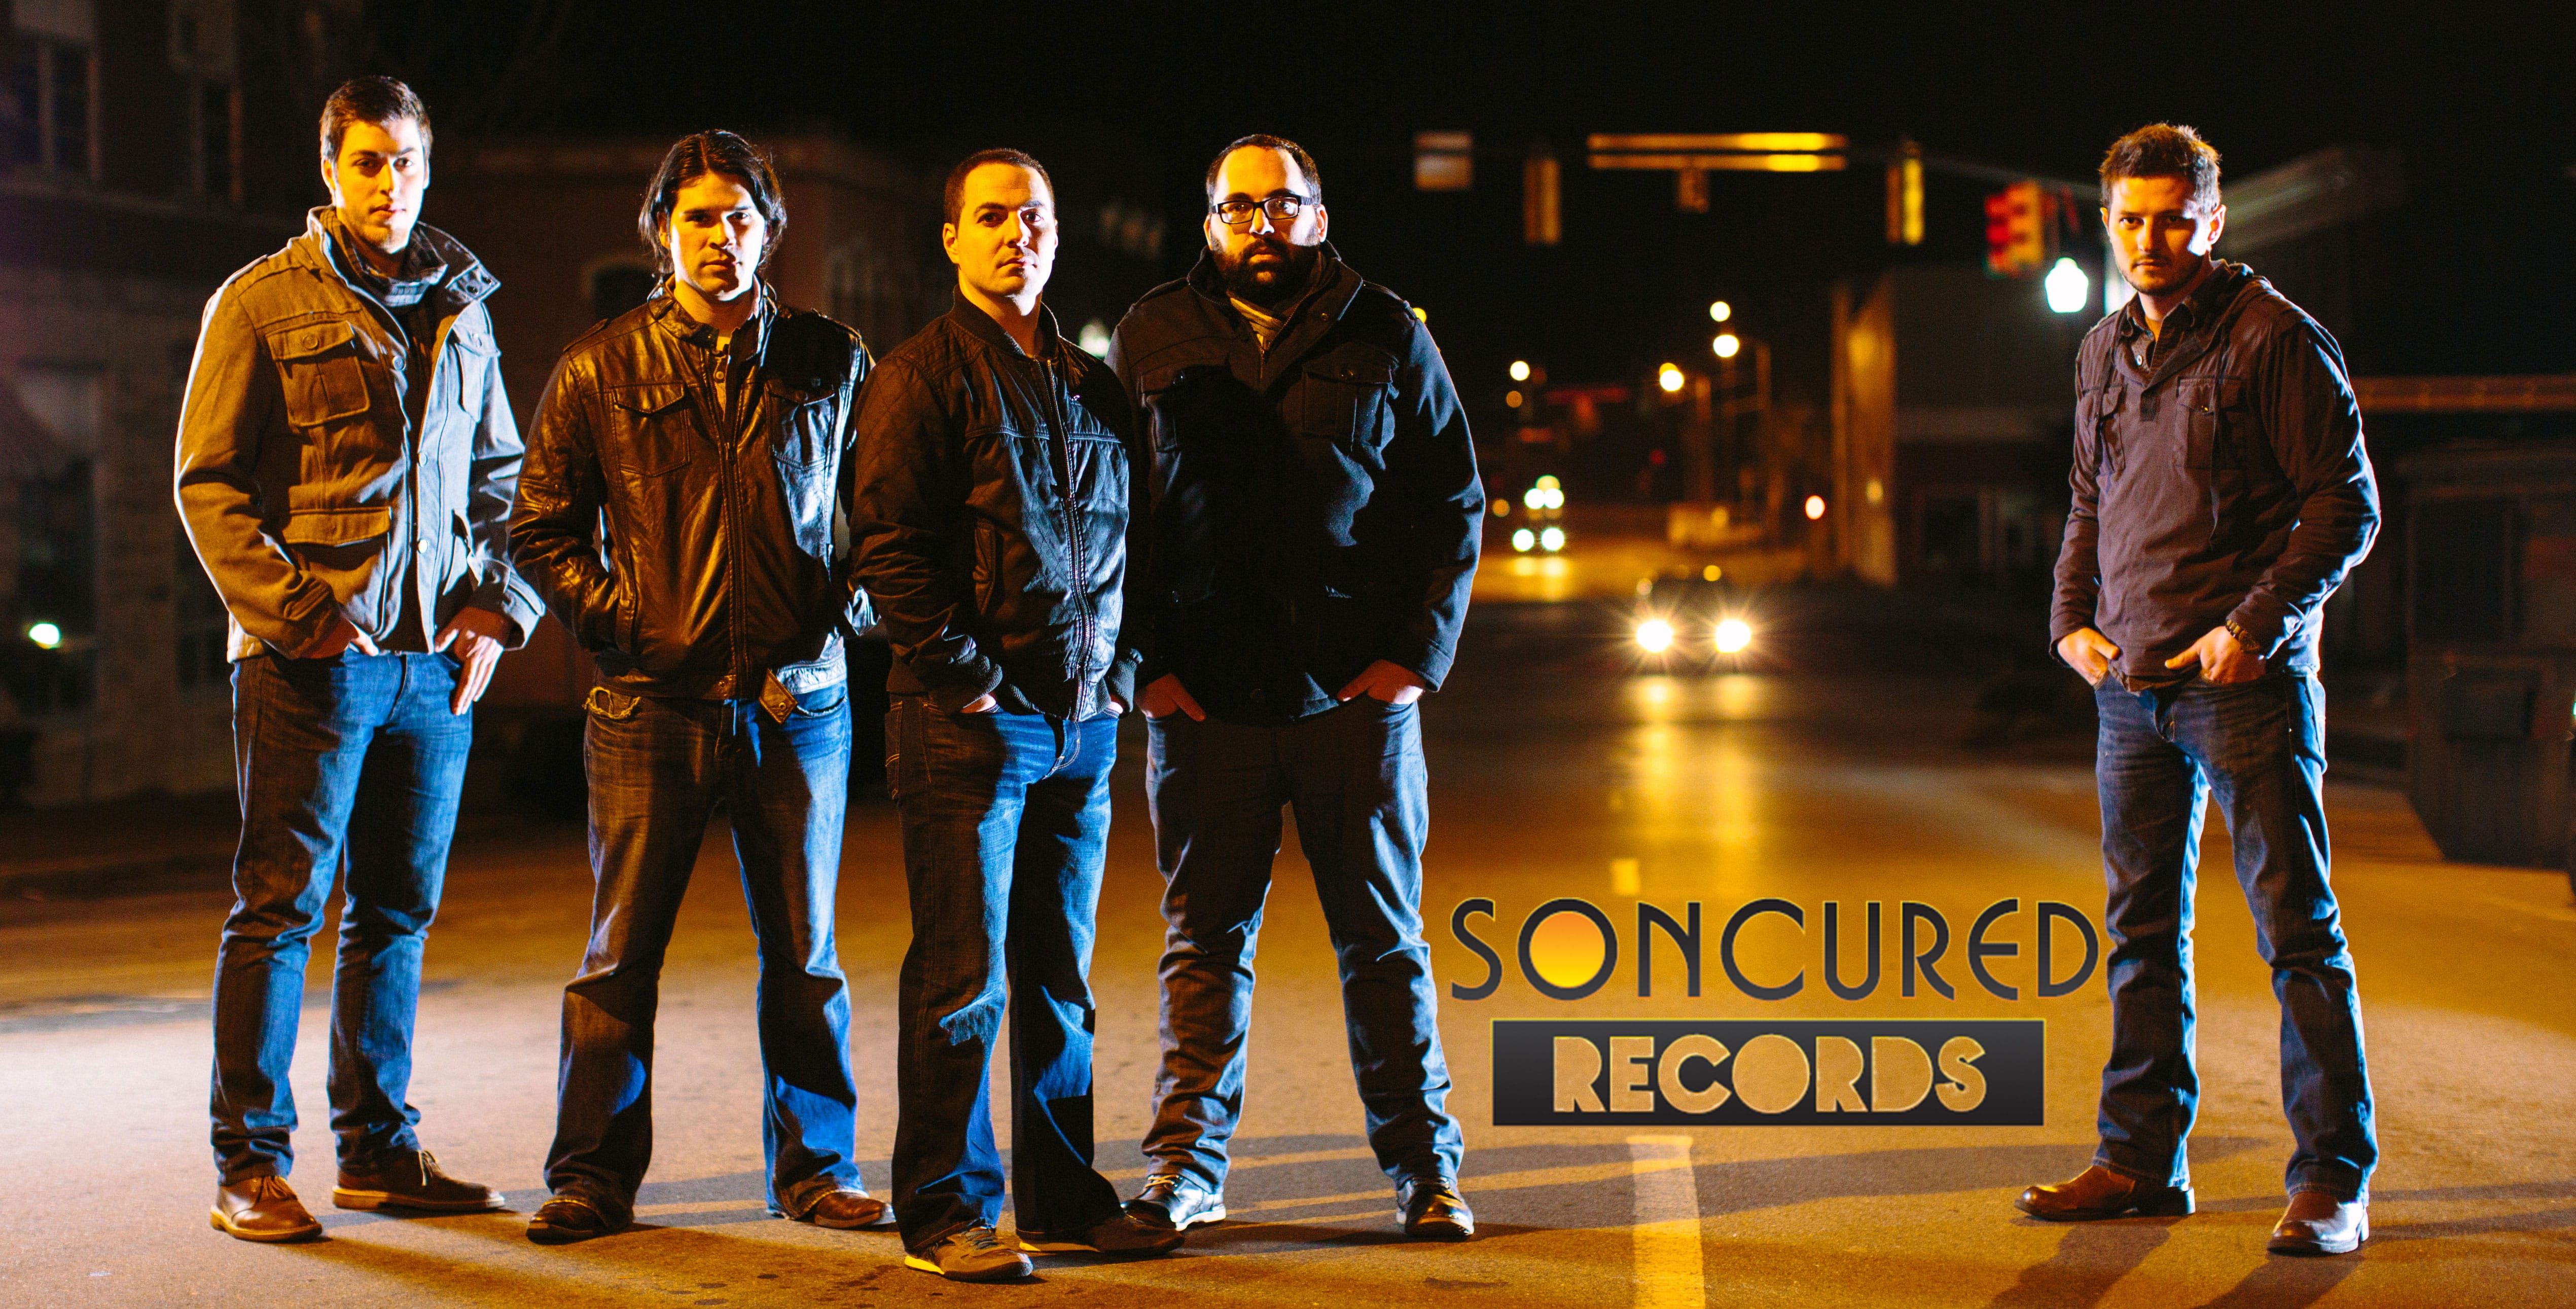 soncured records tennessee christian music soncured records book christian bands. Black Bedroom Furniture Sets. Home Design Ideas